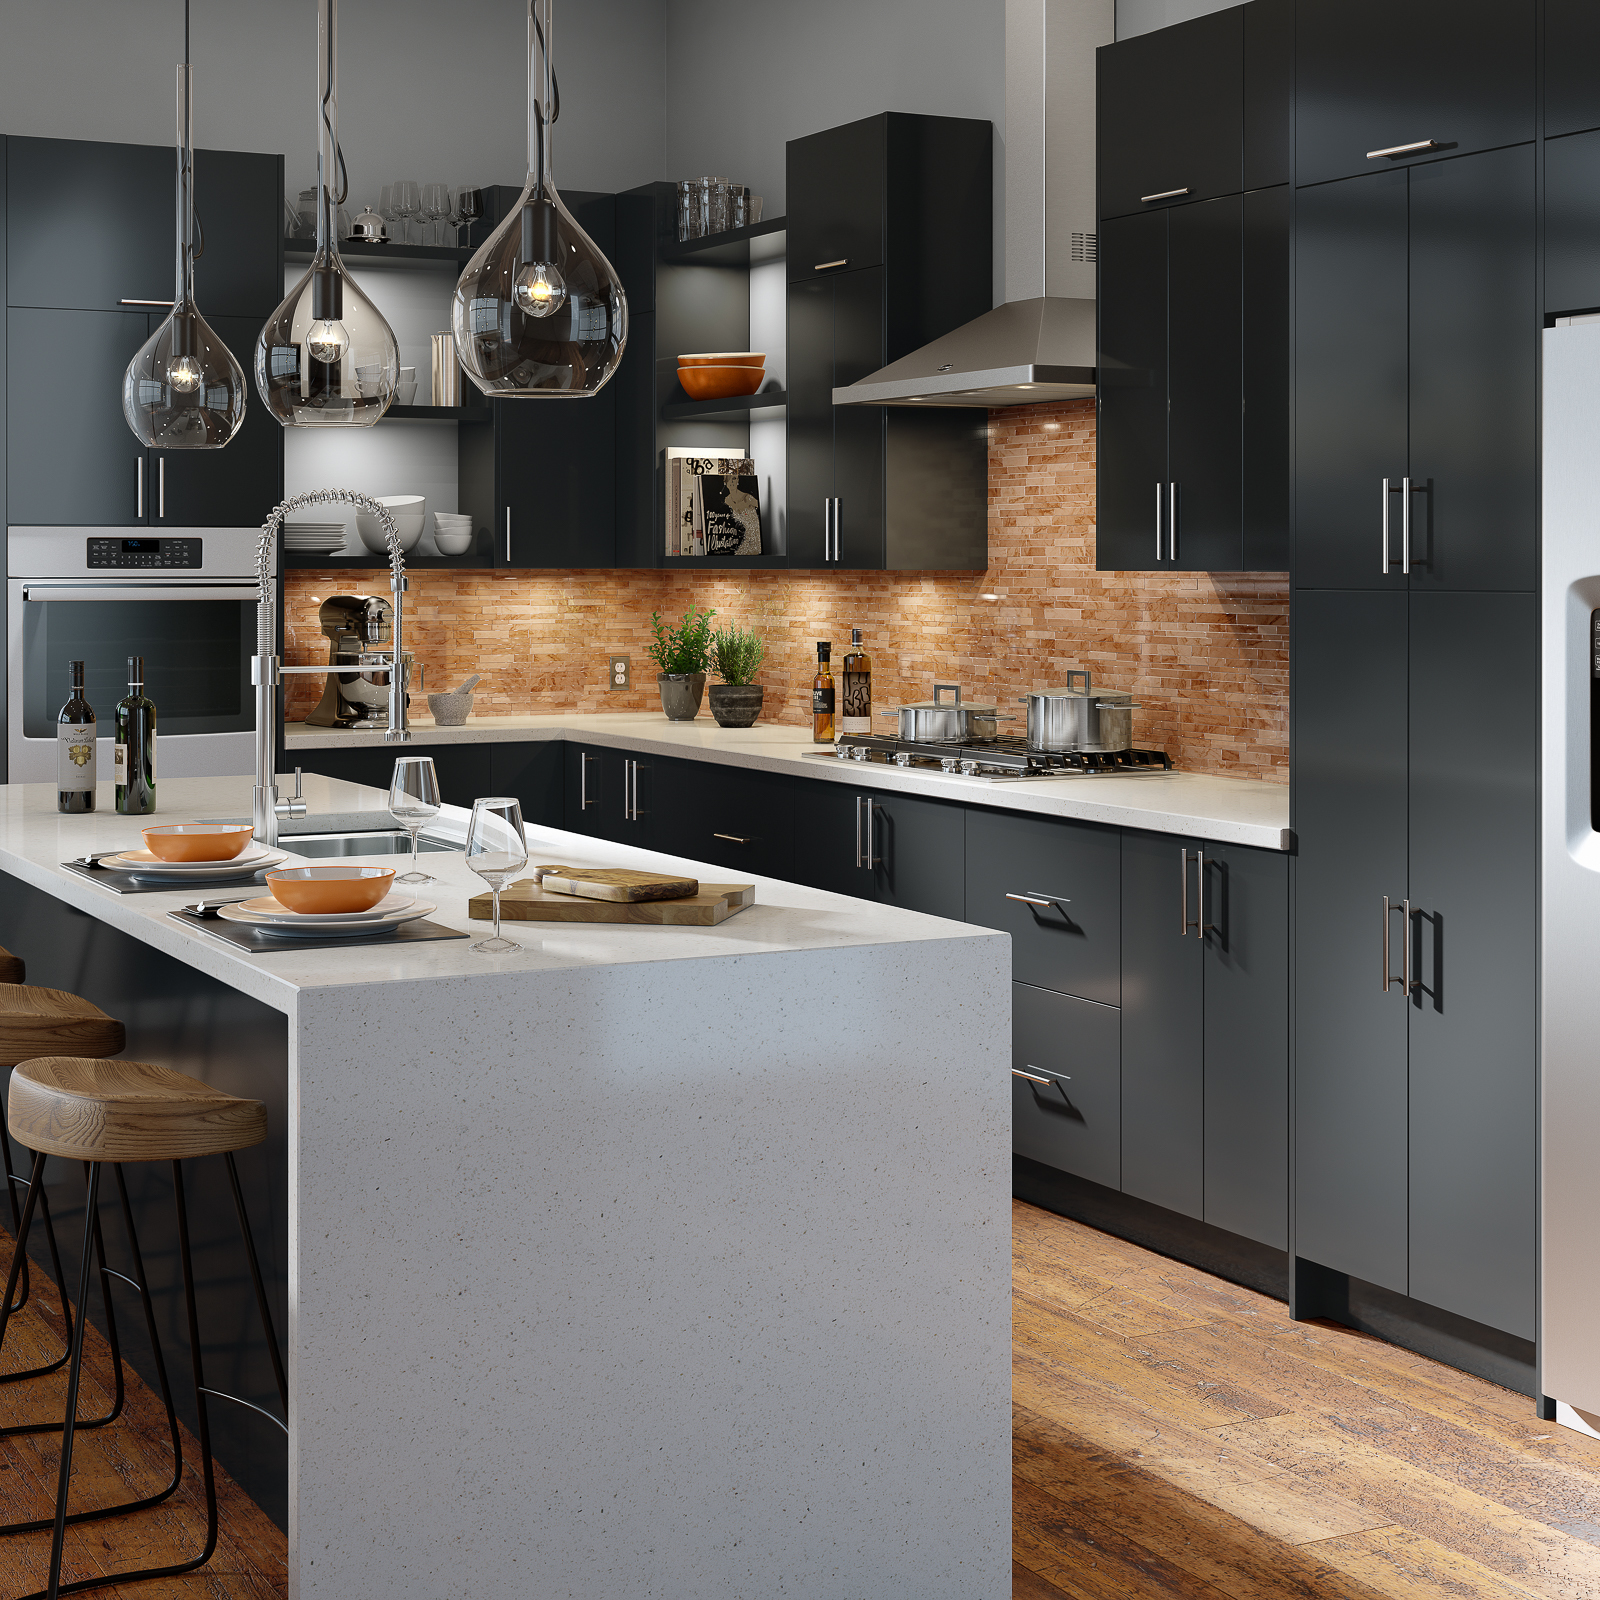 Slab style kitchen cabinets in Graphite high-gloss acrylic by Showplace EVO view 2